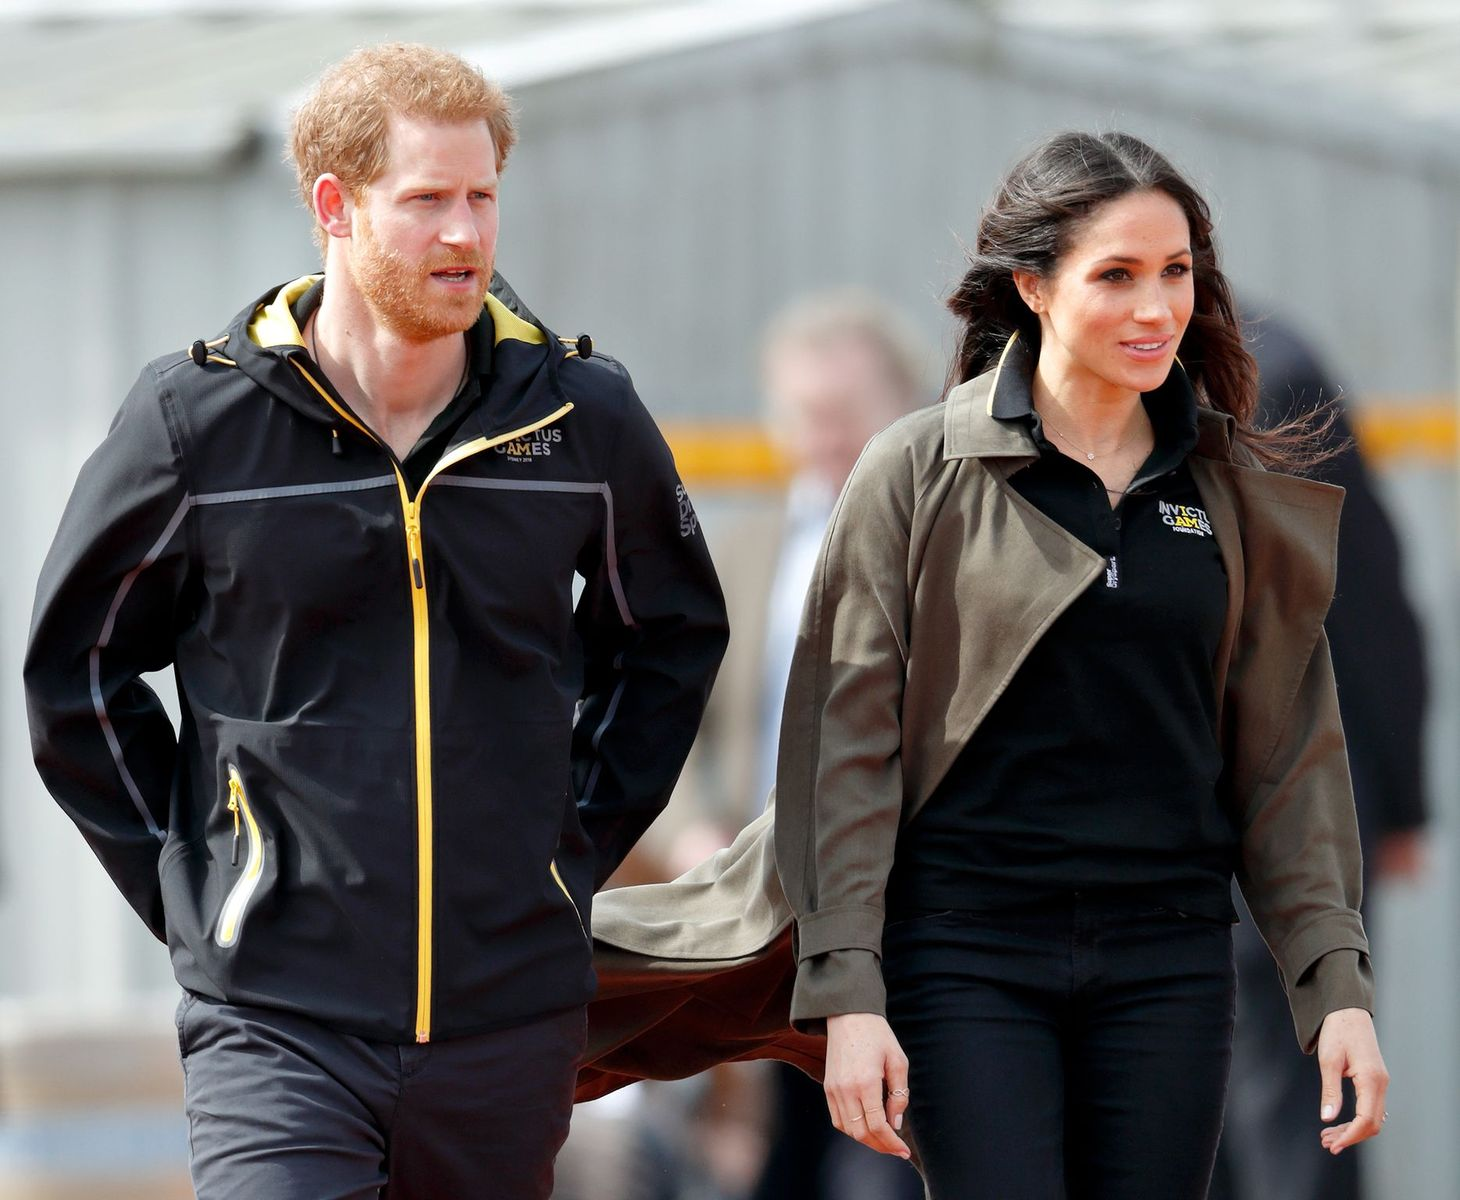 Prince Harry and Duchess Meghan at the UK Team Trials for the Invictus Games on April 6, 2018 | Photo: Getty Images